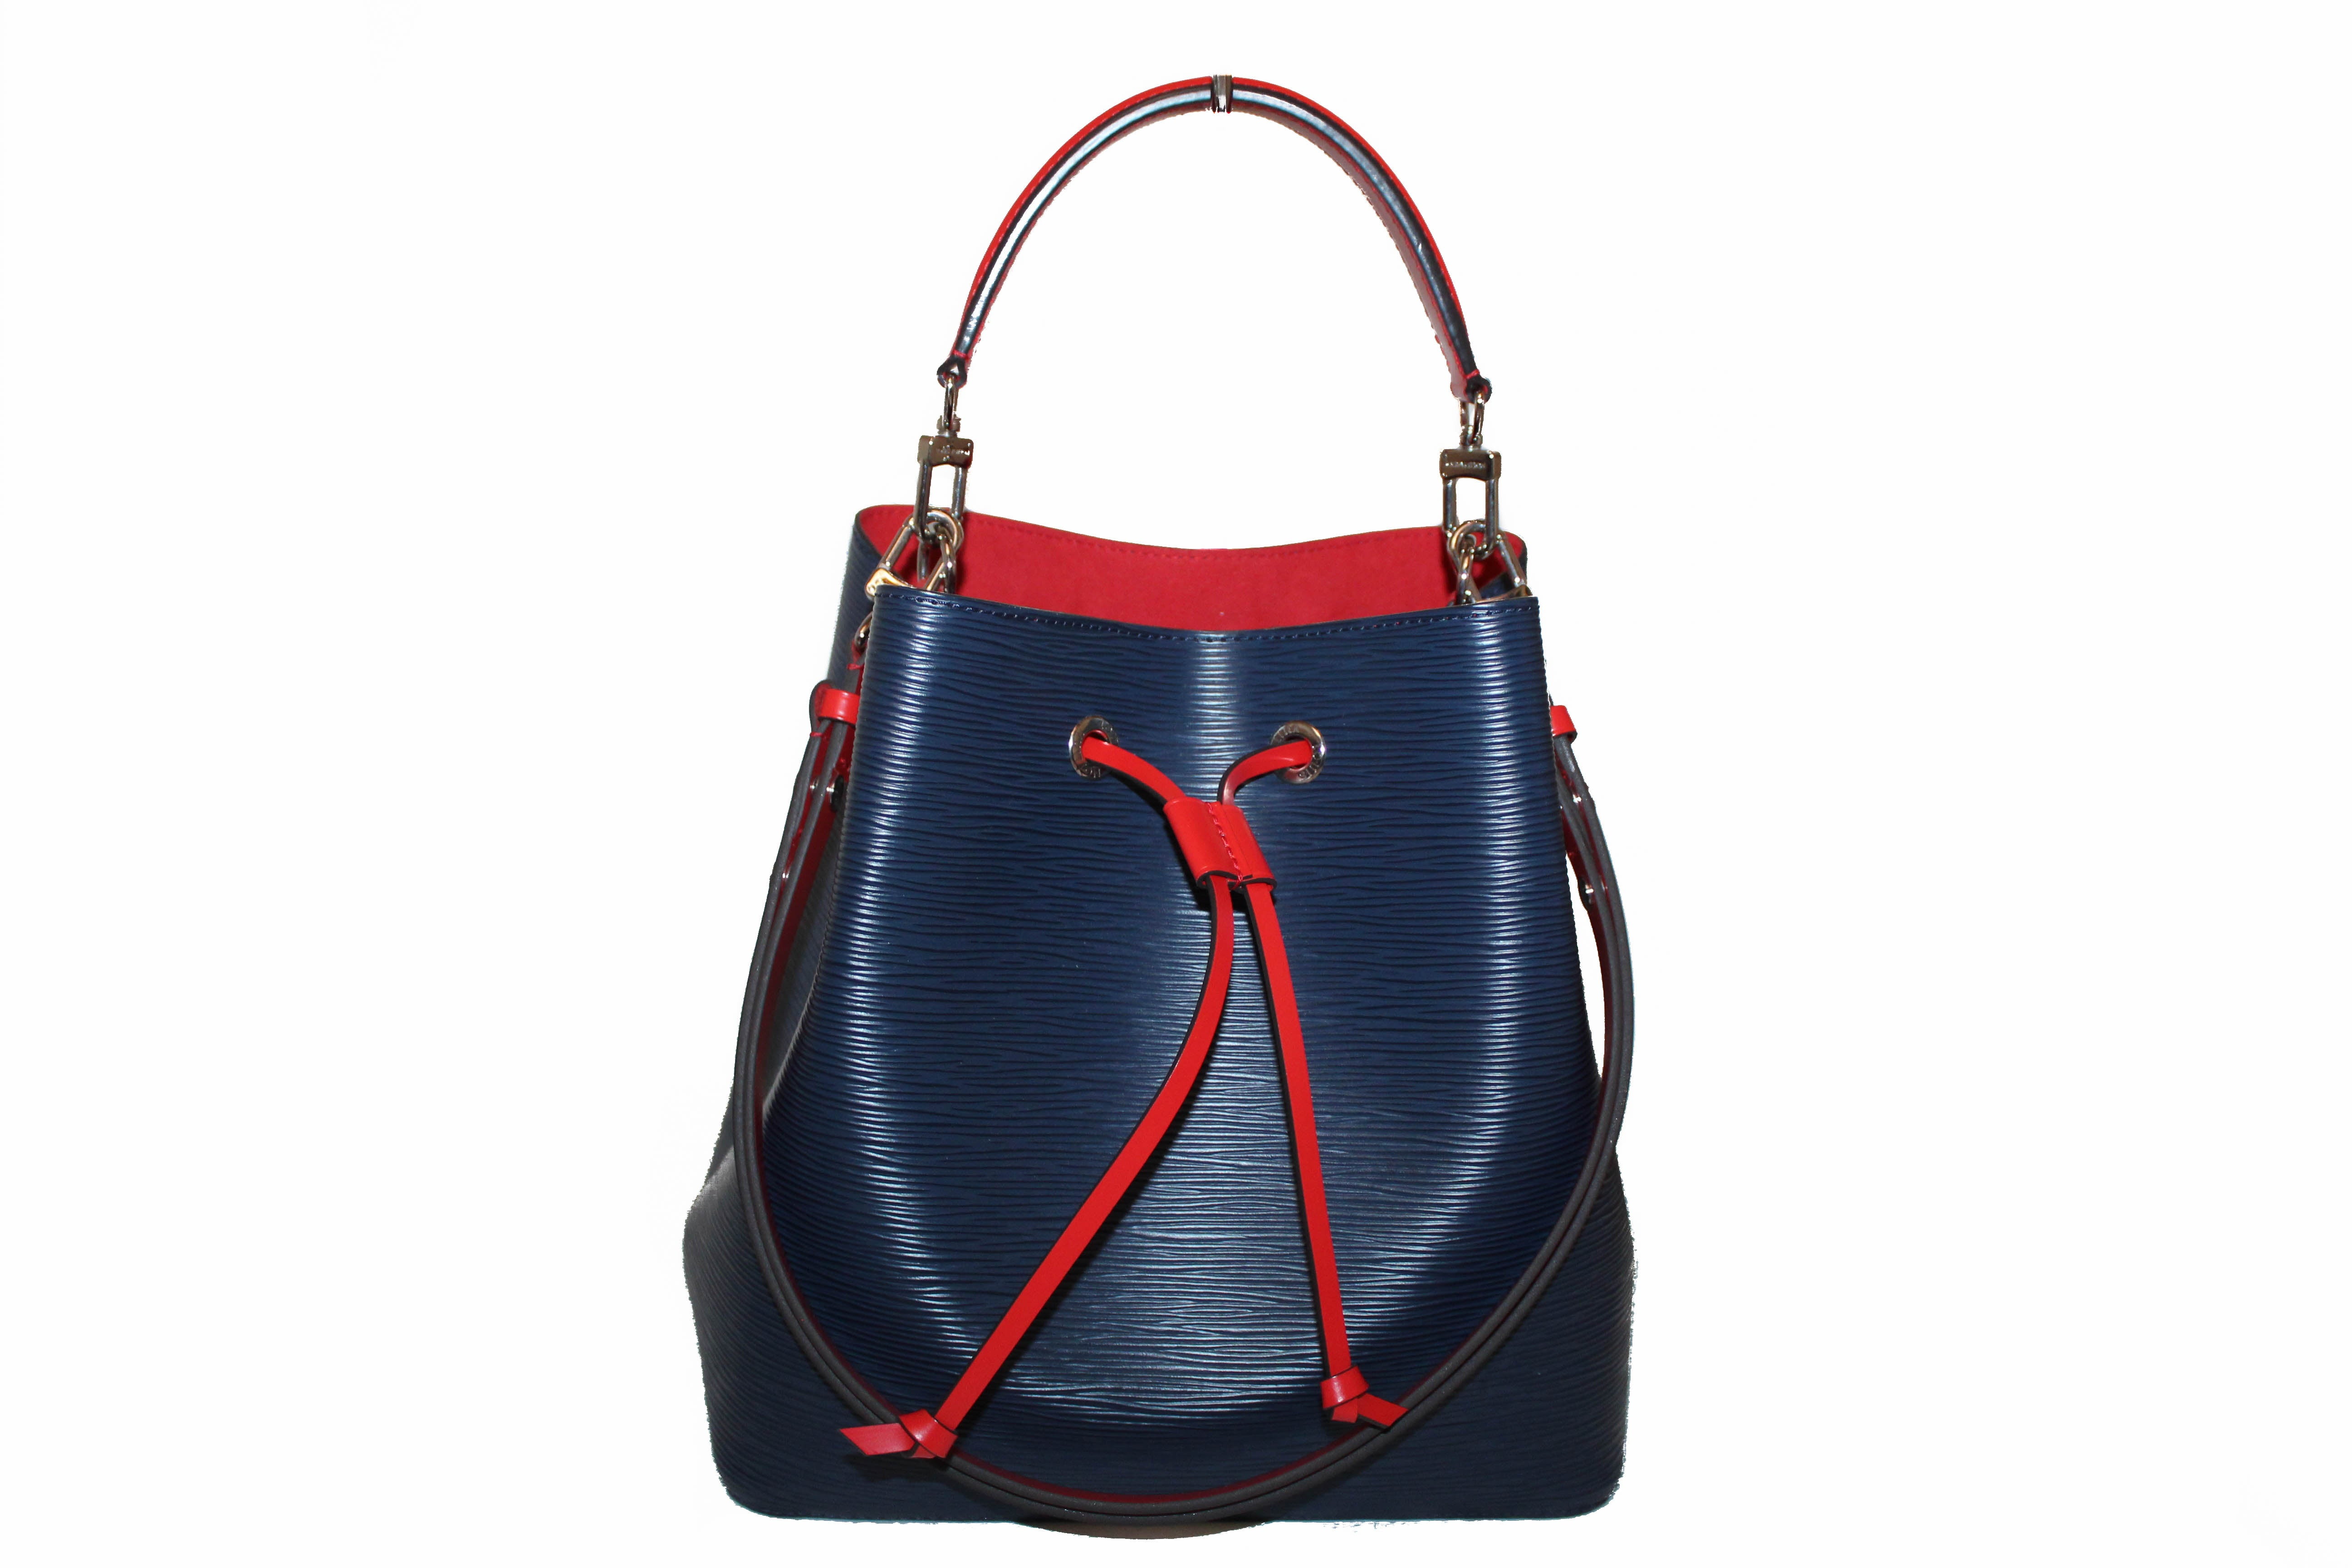 Authentic Louis Vuitton Blue Epi Leather Neo Noe MM Shoulder Bag